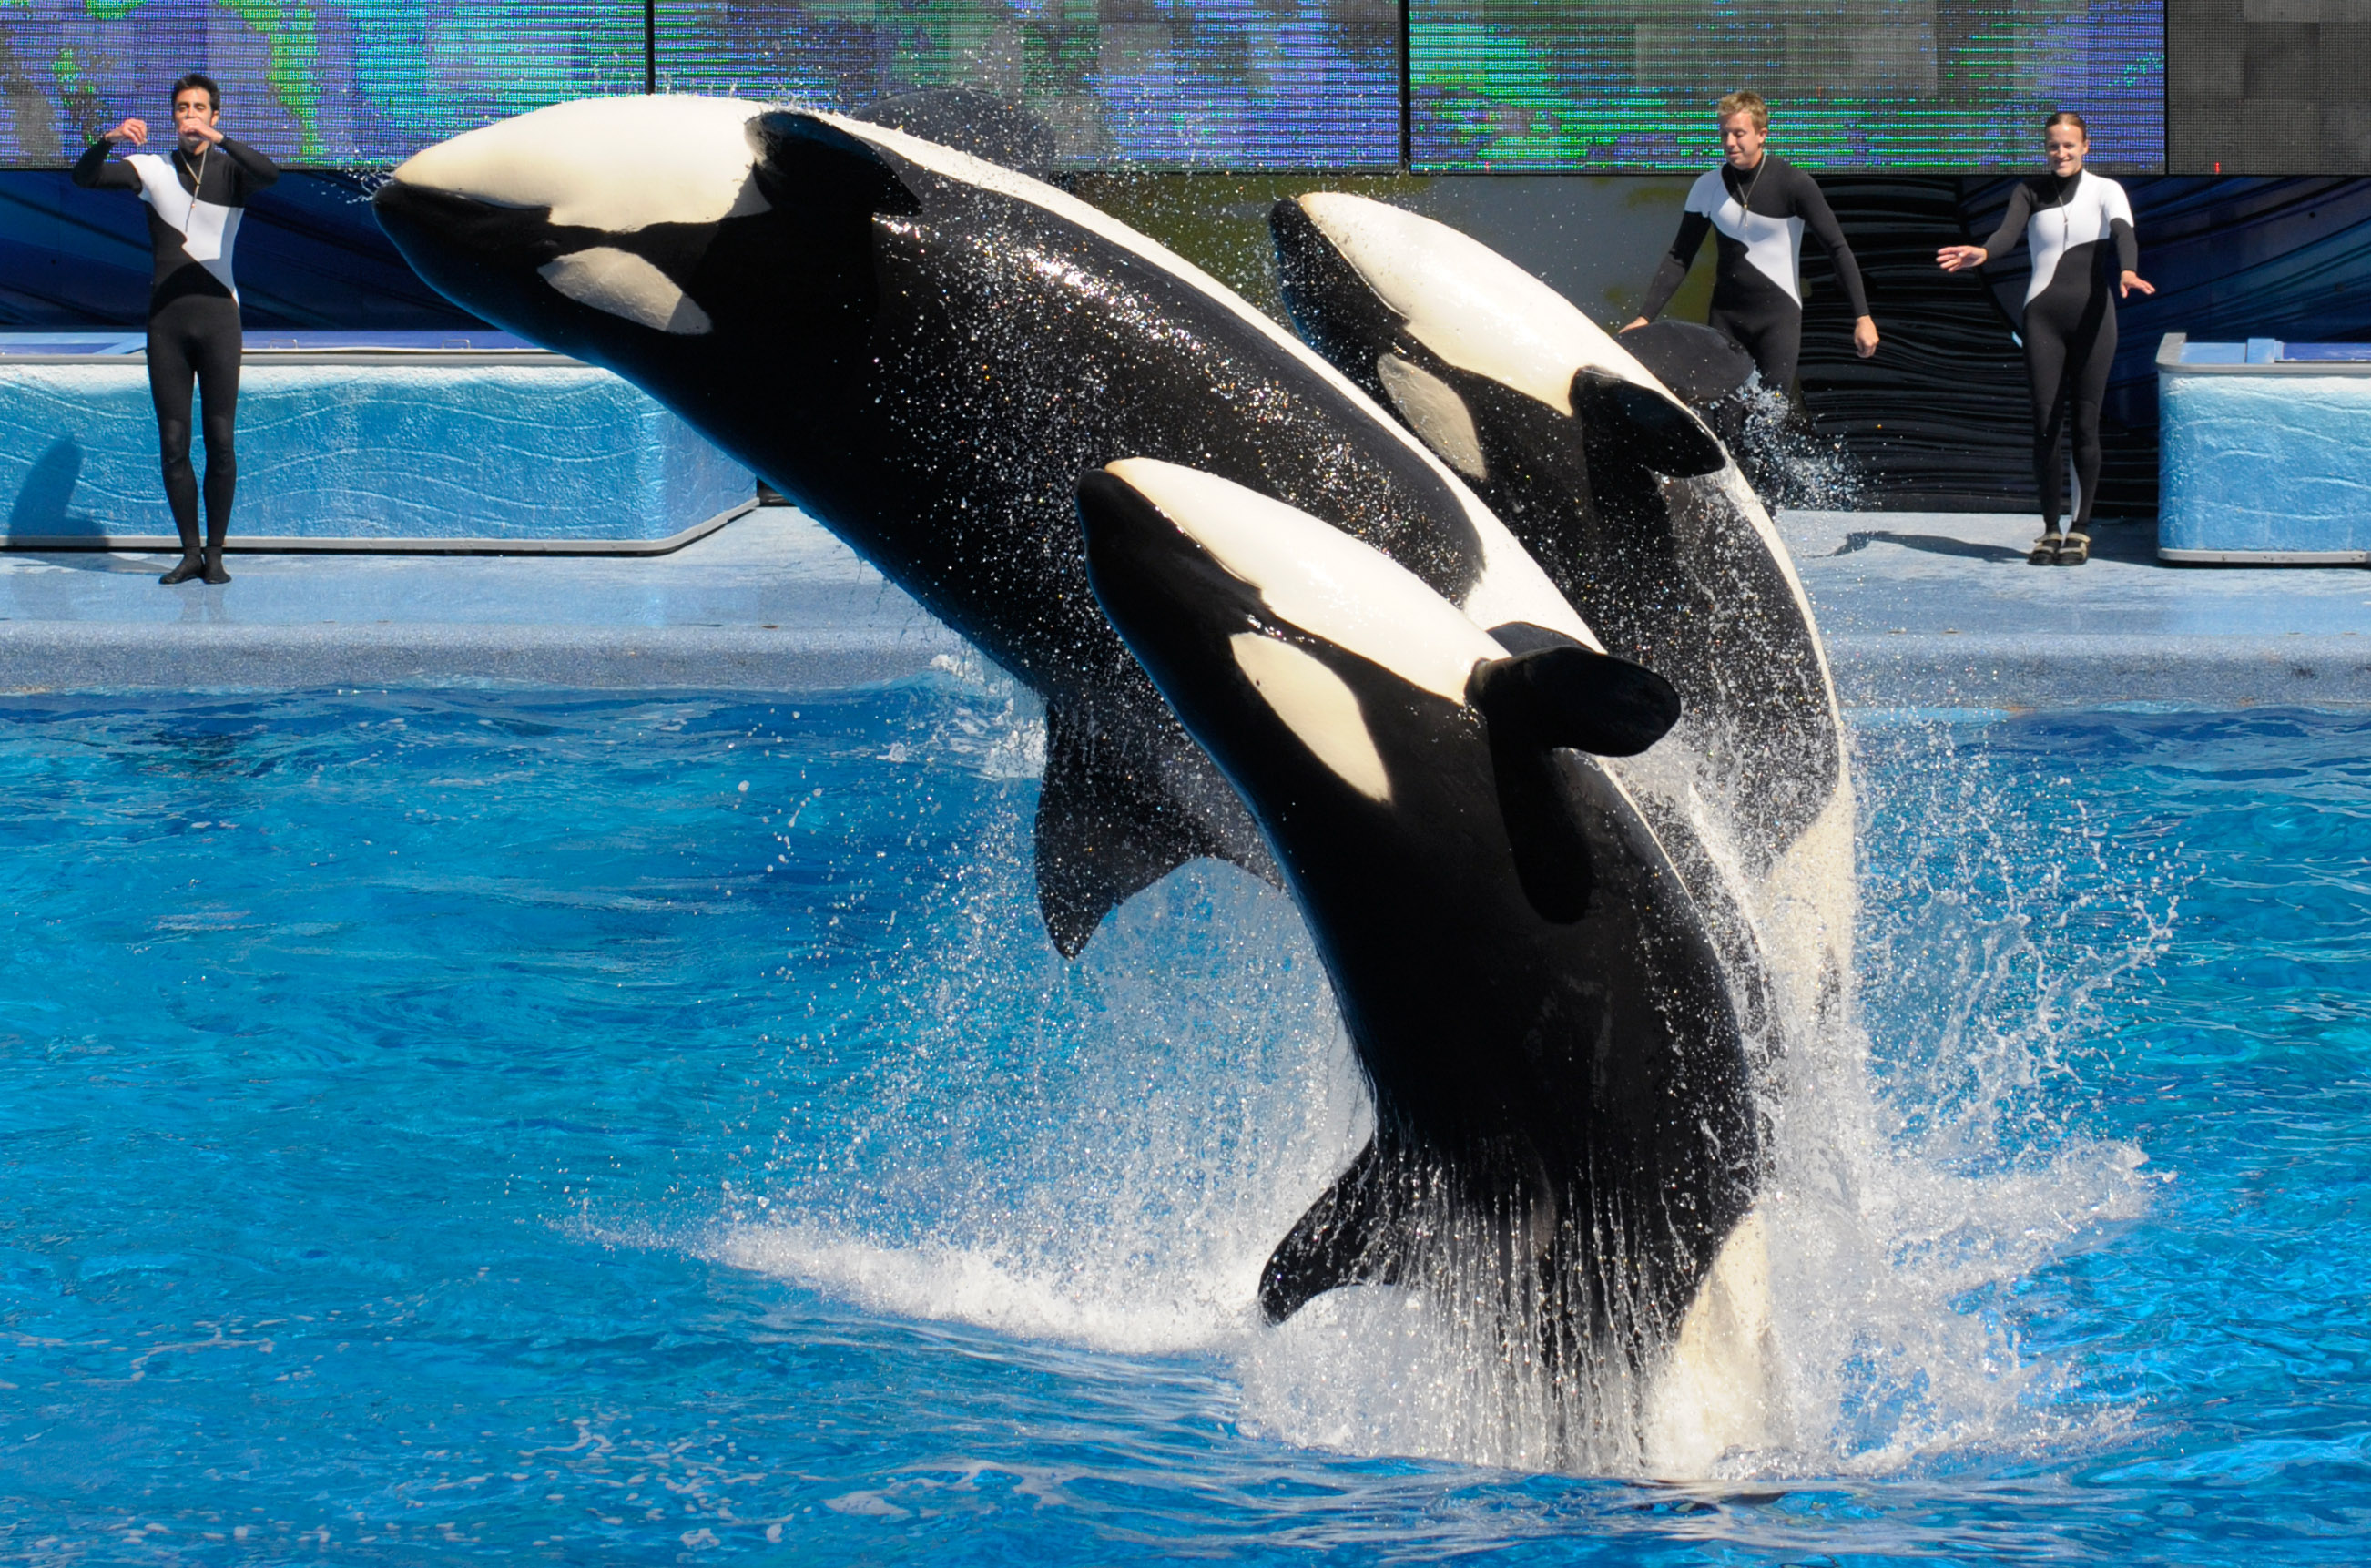 SeaWorld ruling bars trainers from swimming with whales